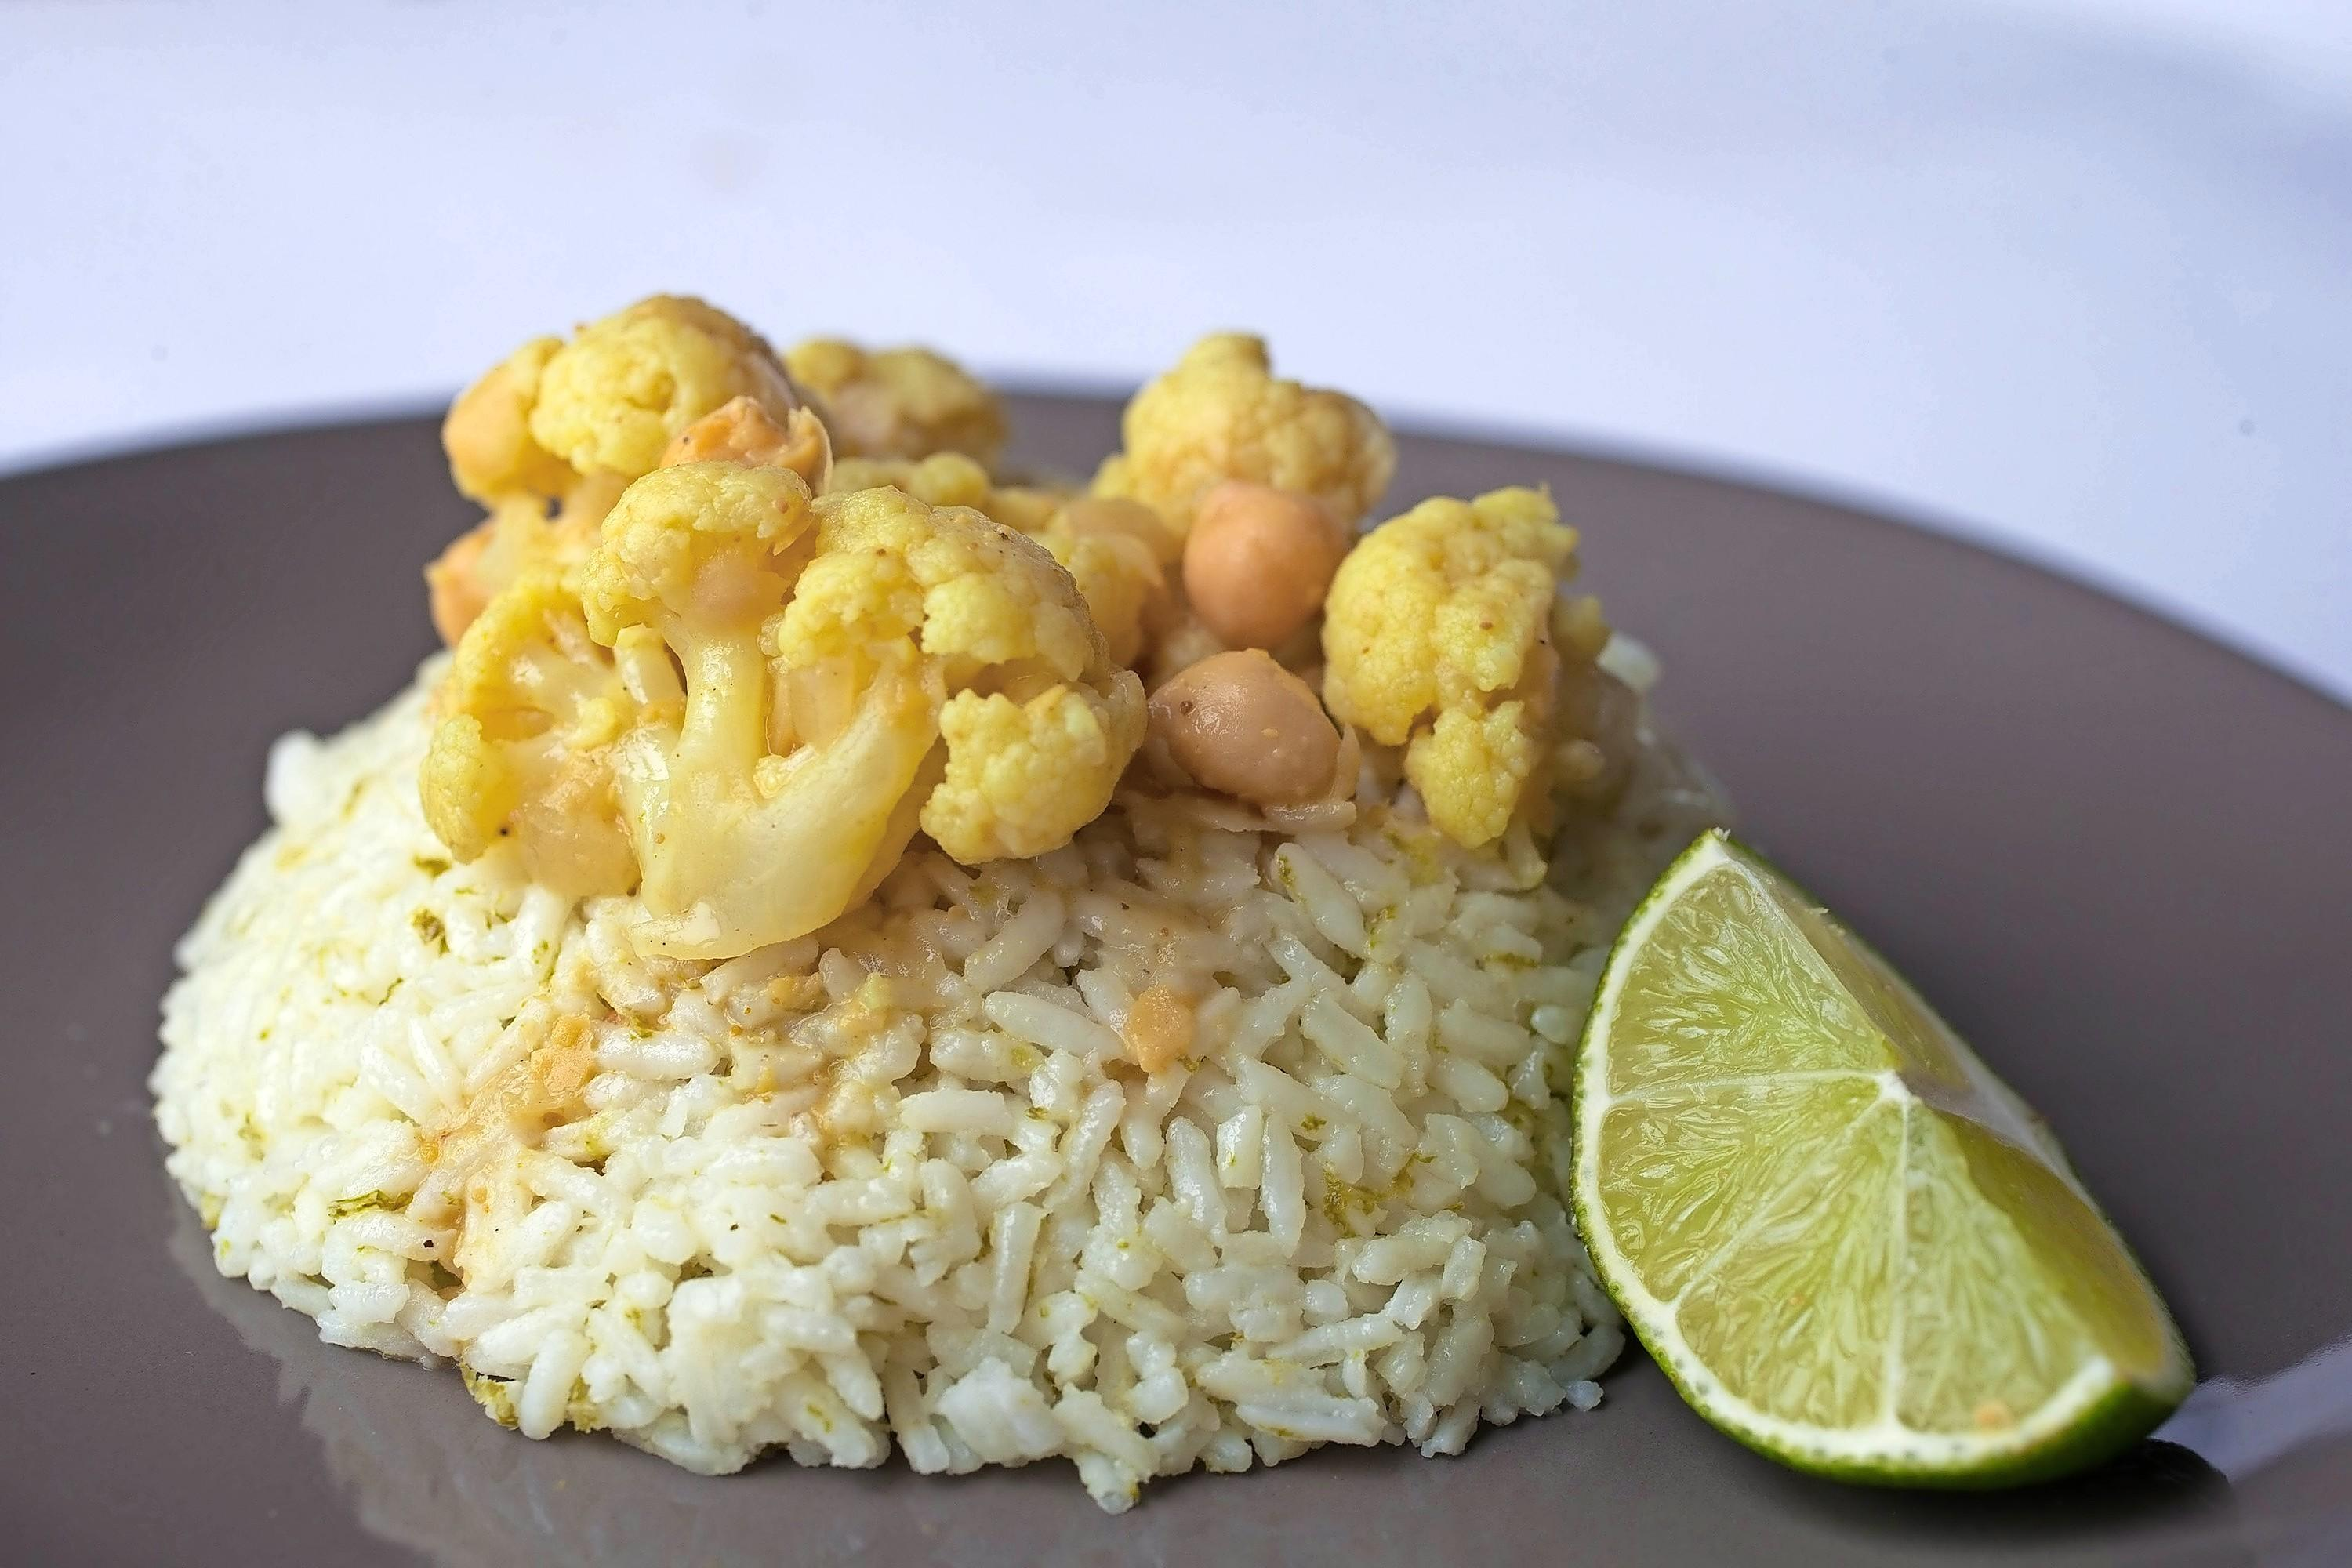 Austin Steele/St. Louis Post-Dispatch/TNS California-lime curry